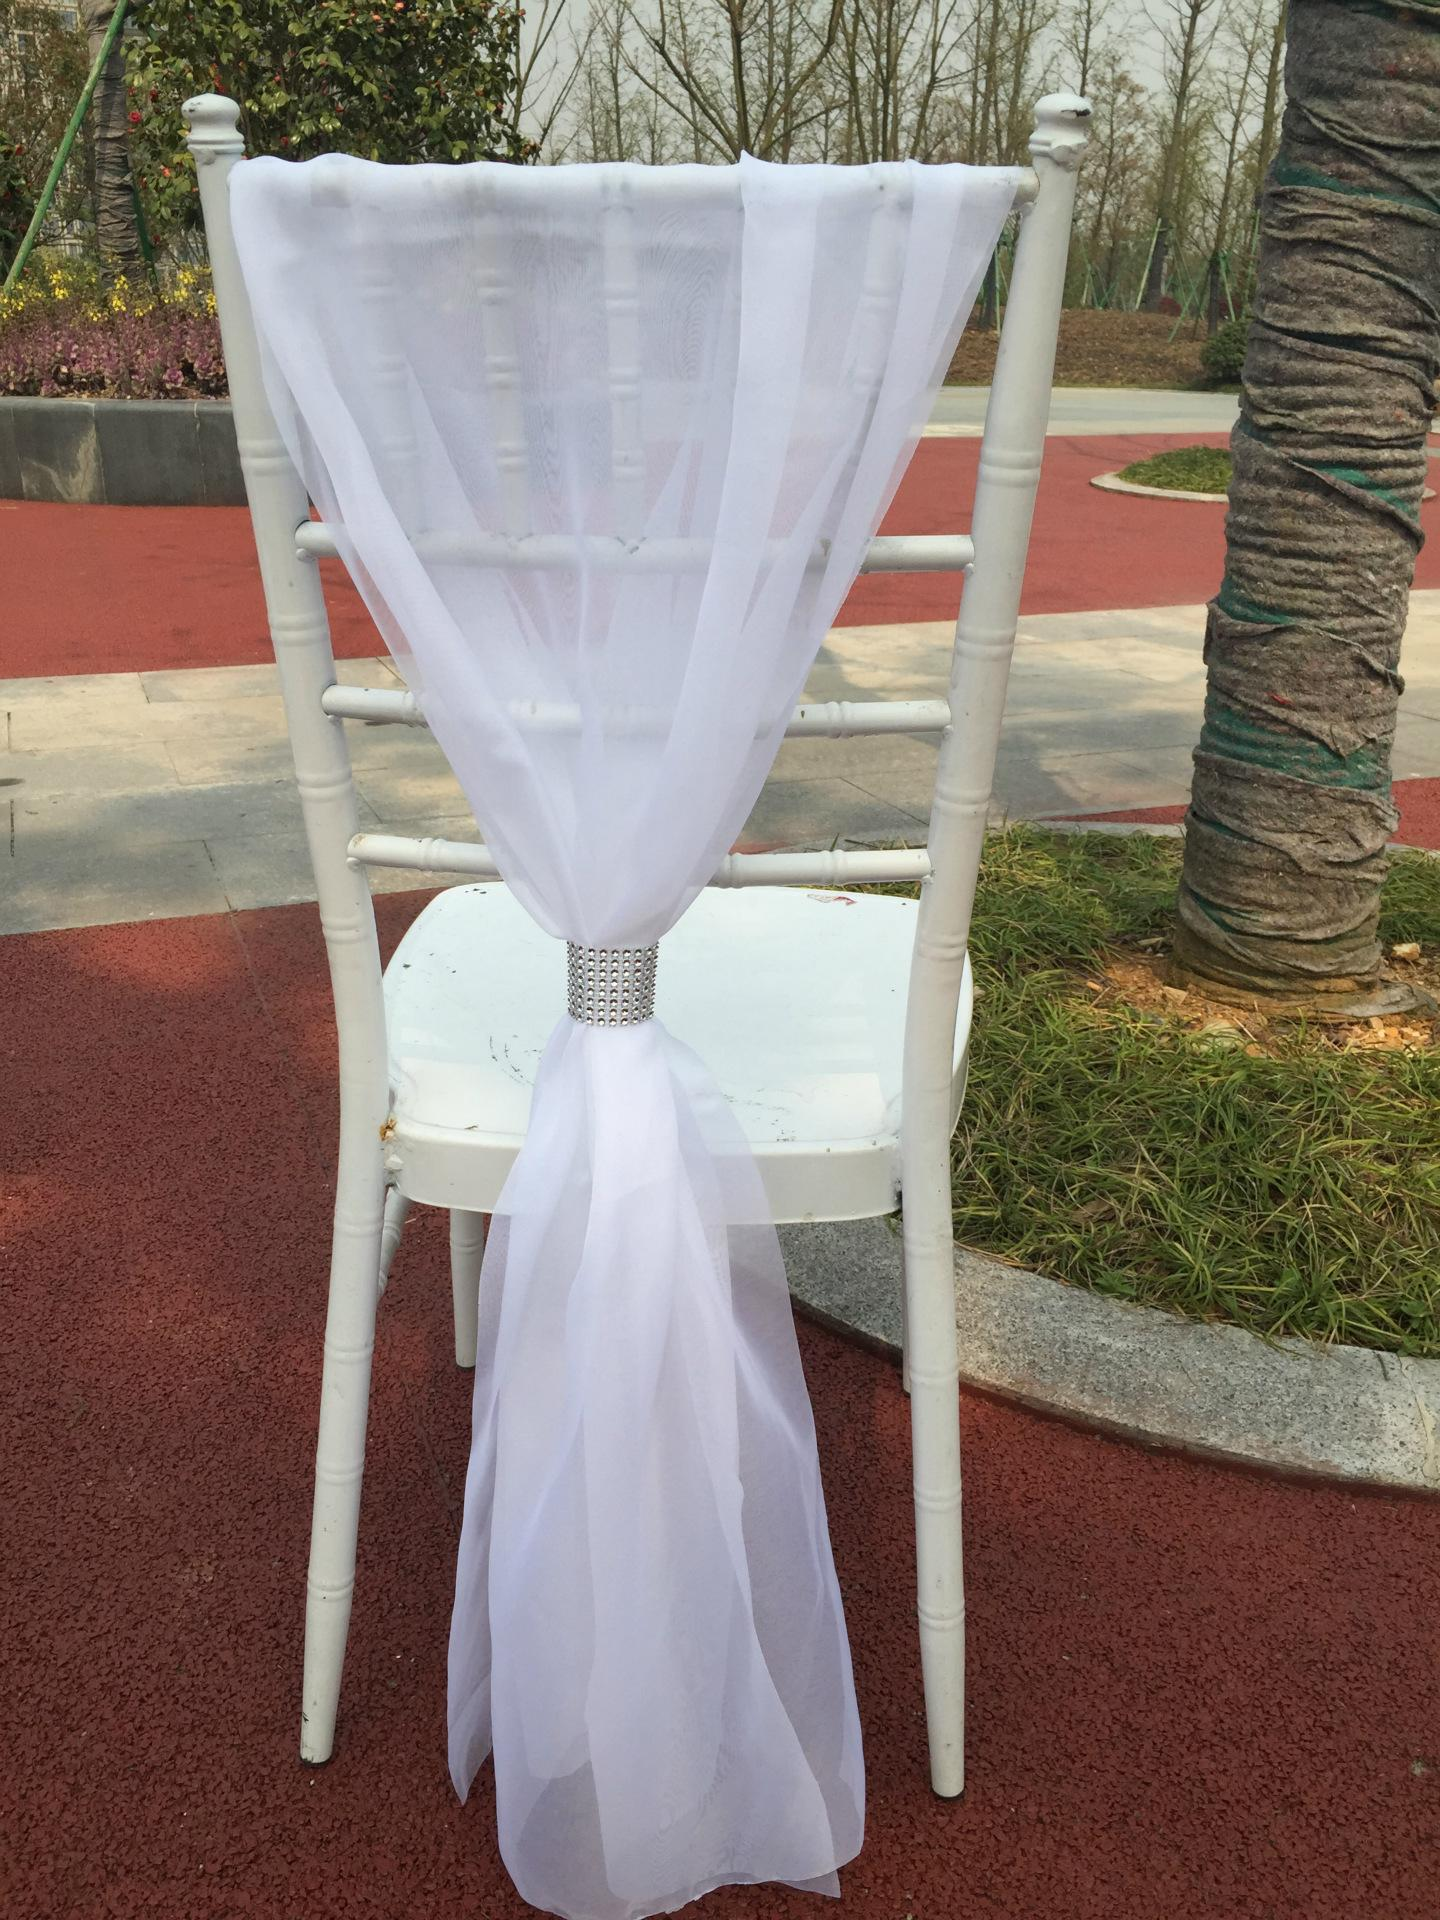 wholesale outdoor Wedding Chair sashes ribbon with rhinestone Party Event courtyard Chair dackdrops covers Wedding Chair Bows